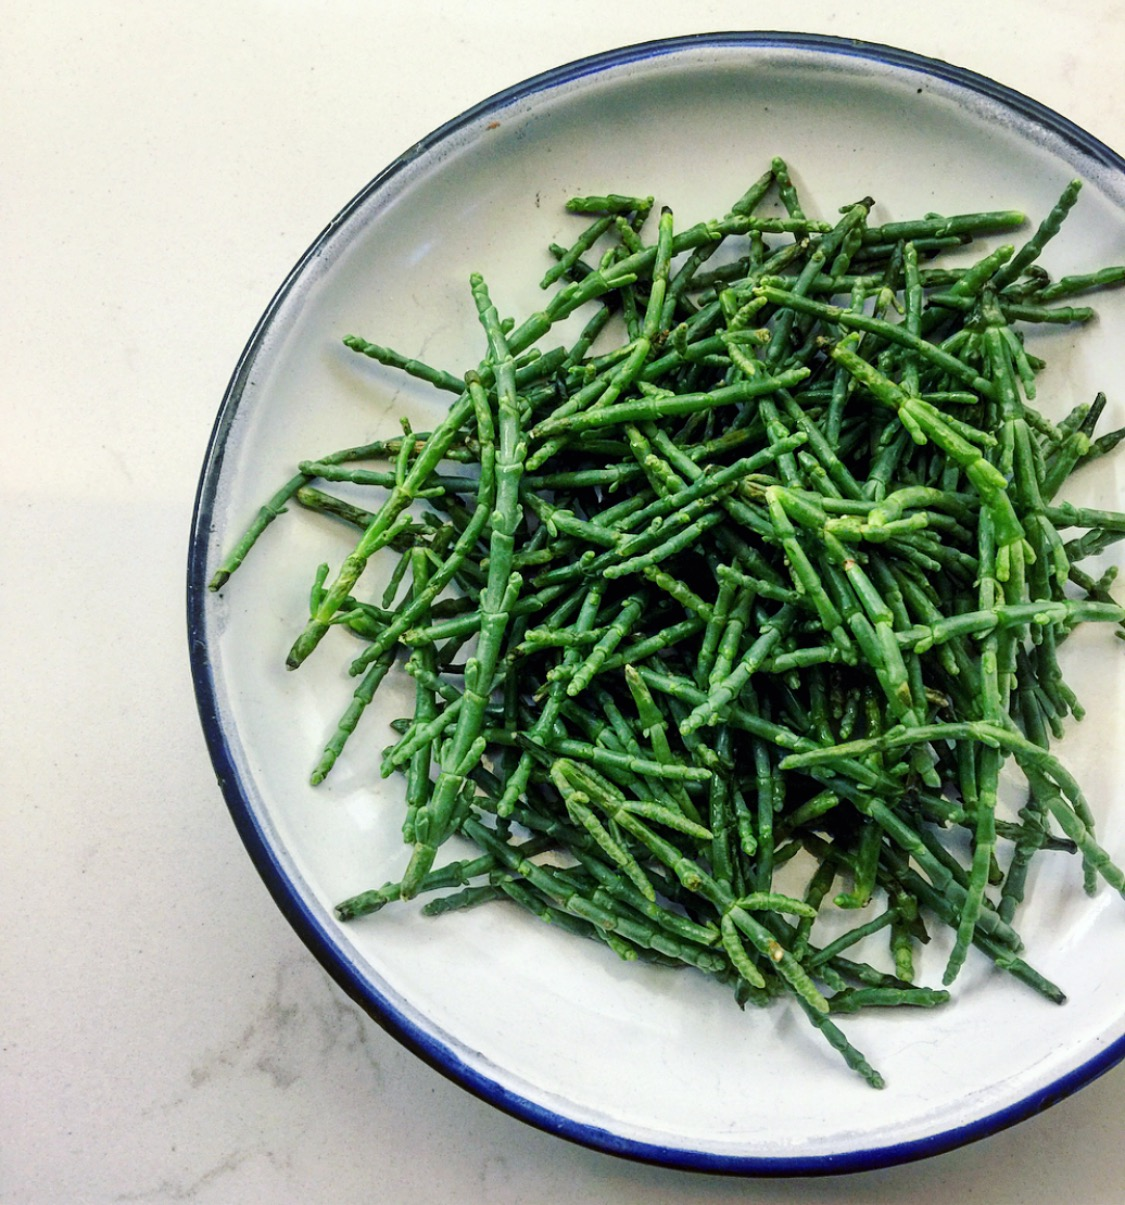 sea asparagus or samphire